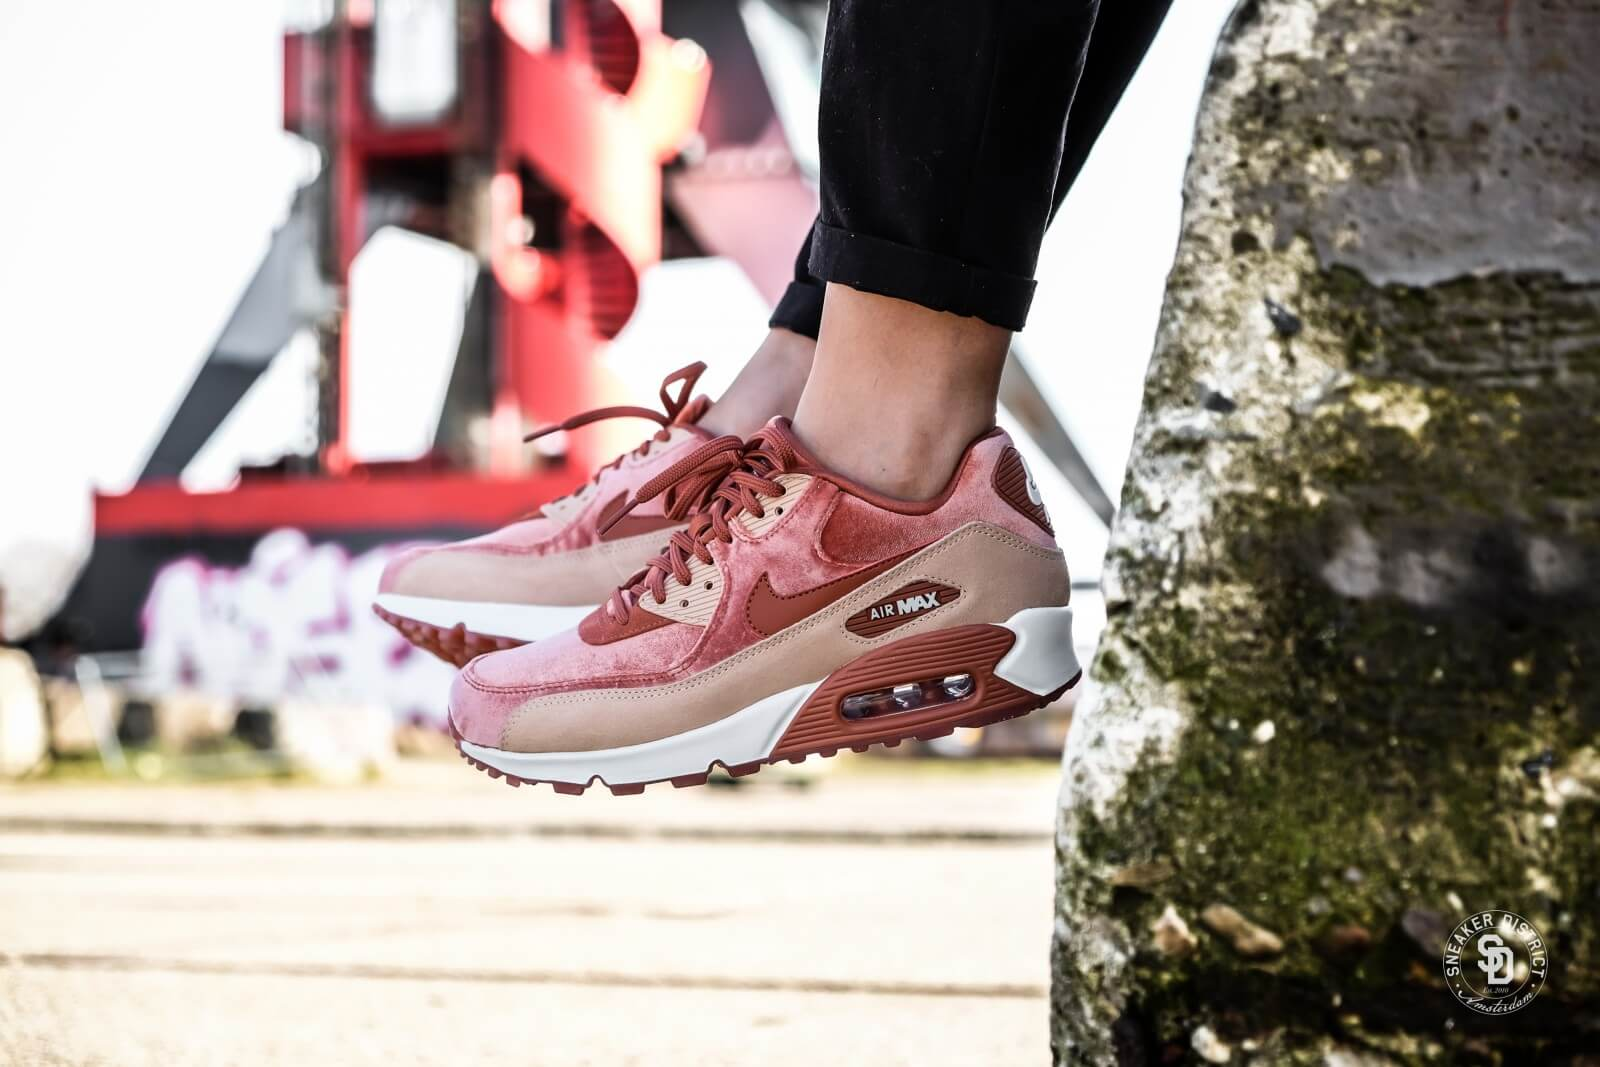 competitive price e4901 4f719 Nike Femme Air Max 90 LX  Dusty Peach  898512-201 – AUTHENTIC SHOES